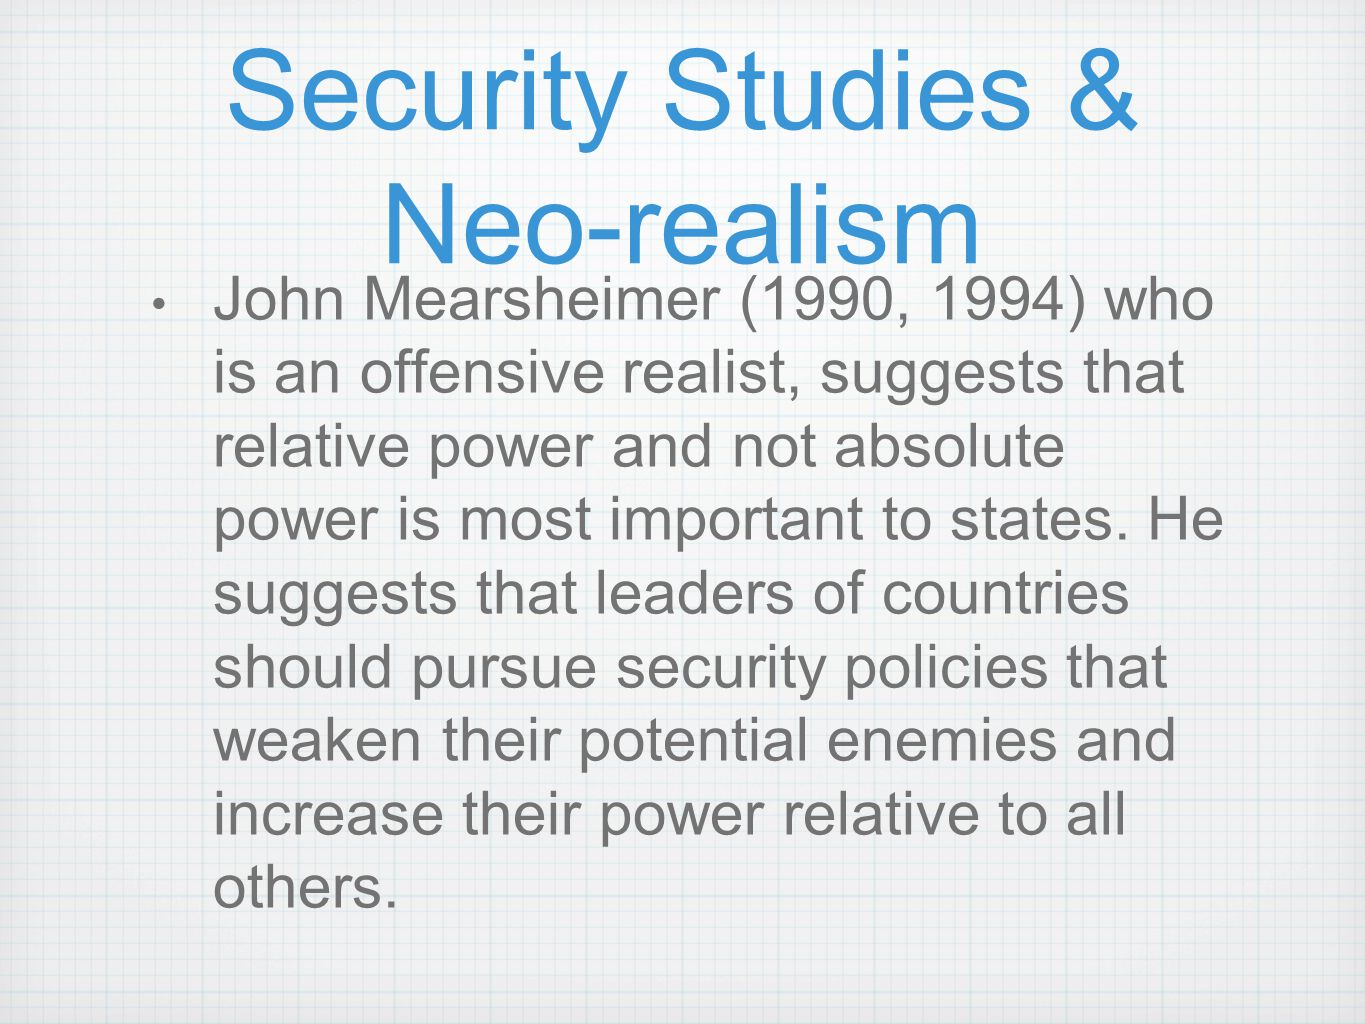 Security Studies & Neo-realism John Mearsheimer (1990, 1994) who is an offensive realist, suggests that relative power and not absolute power is most